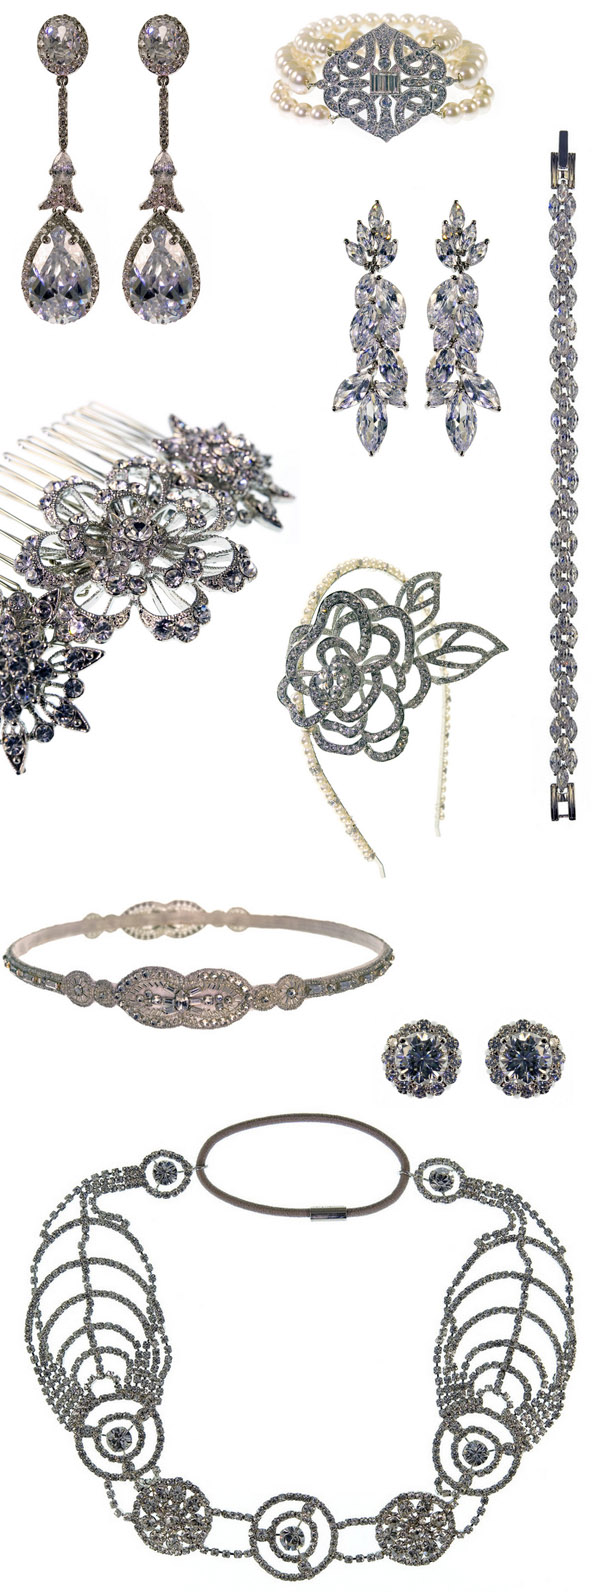 Millany Bridal Jewelry and Accessories | via junebugweddings.com